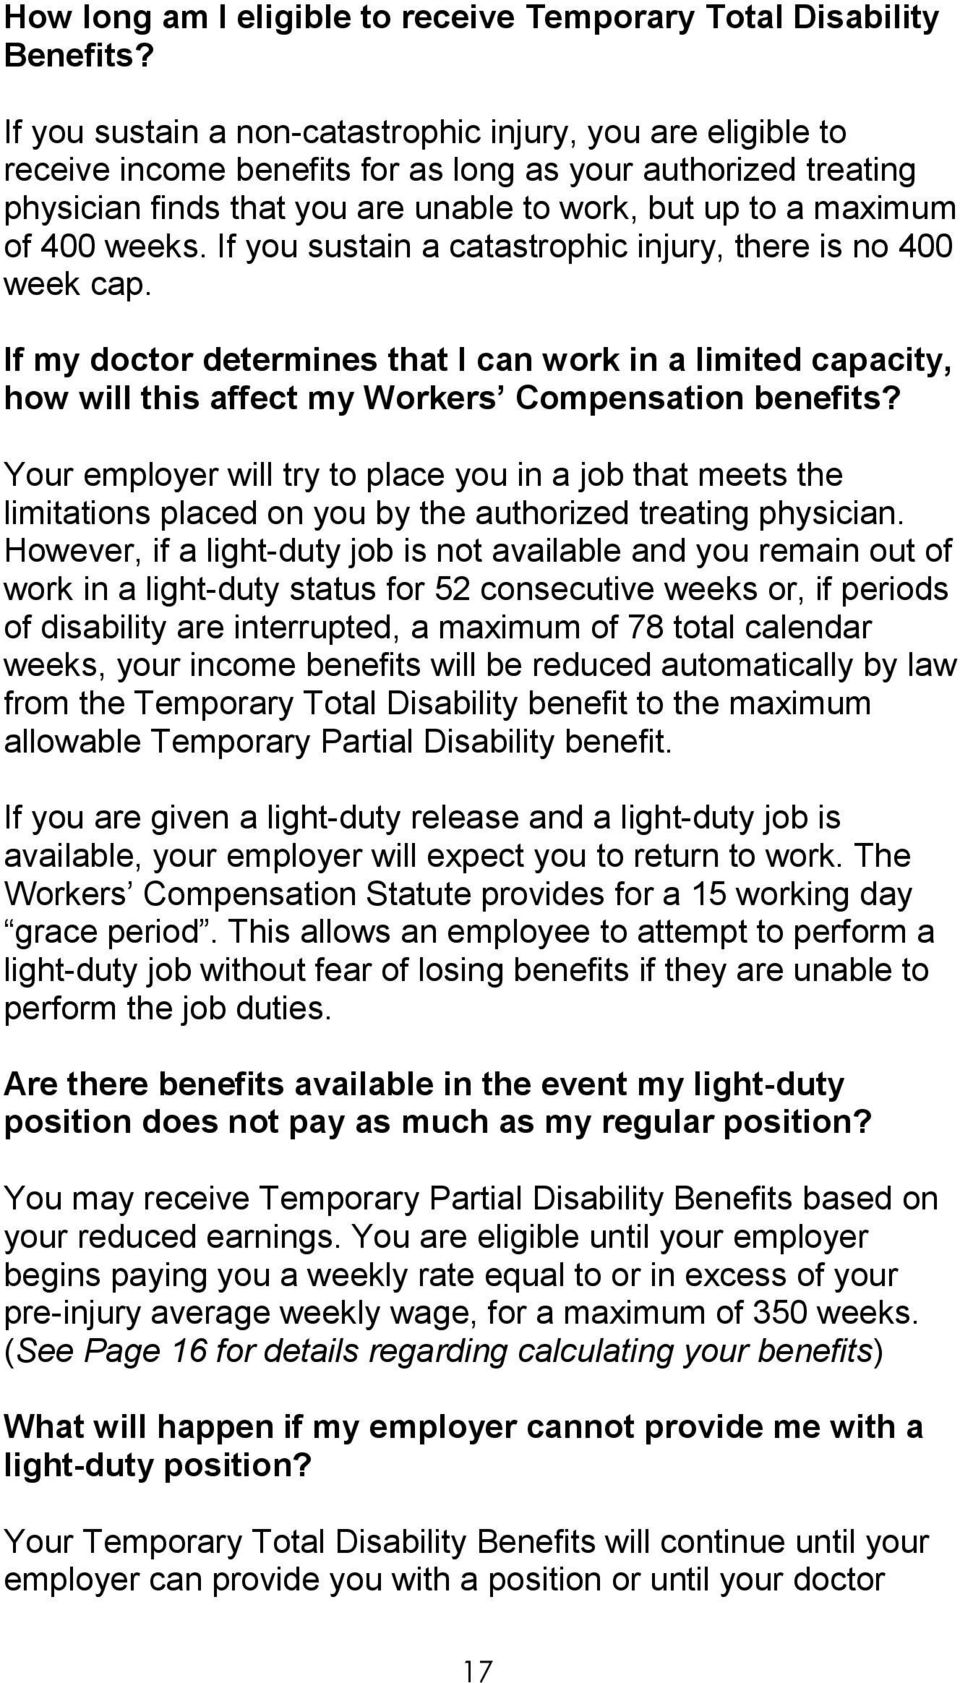 weeks. If you sustain a catastrophic injury, there is no 400 week cap. If my doctor determines that I can work in a limited capacity, how will this affect my Workers Compensation benefits?